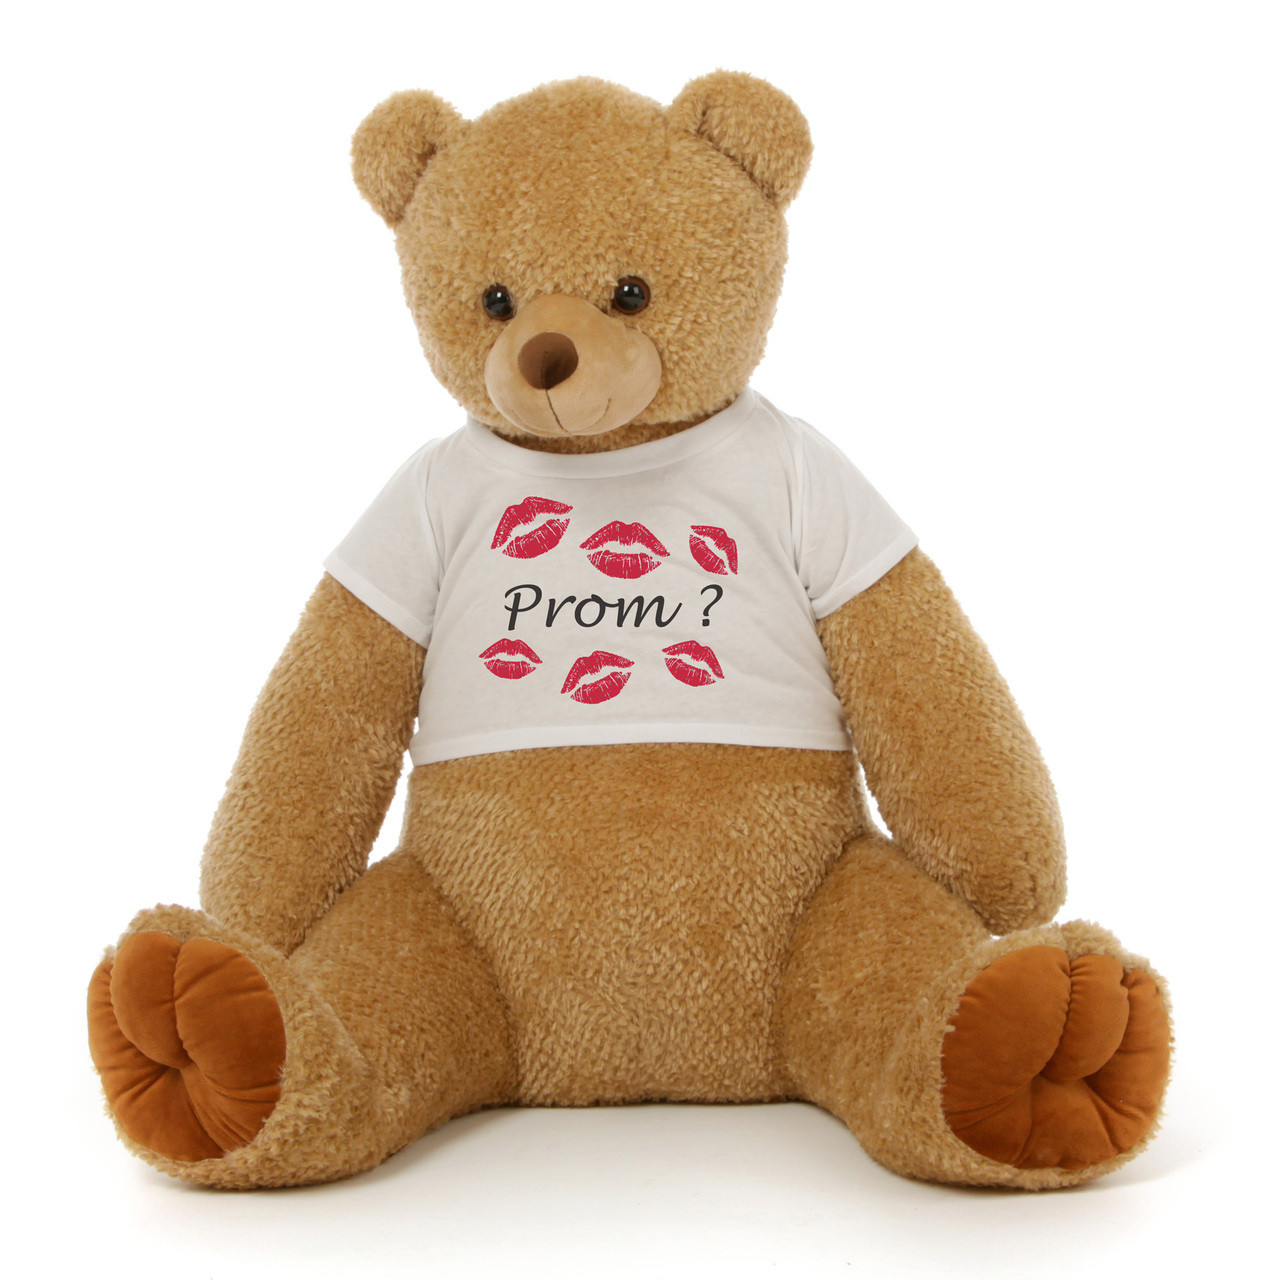 3½ ft Honey Tubs Adorable Amber Brown Prom Teddy Bear (Prom ? - Tiny Kisses)